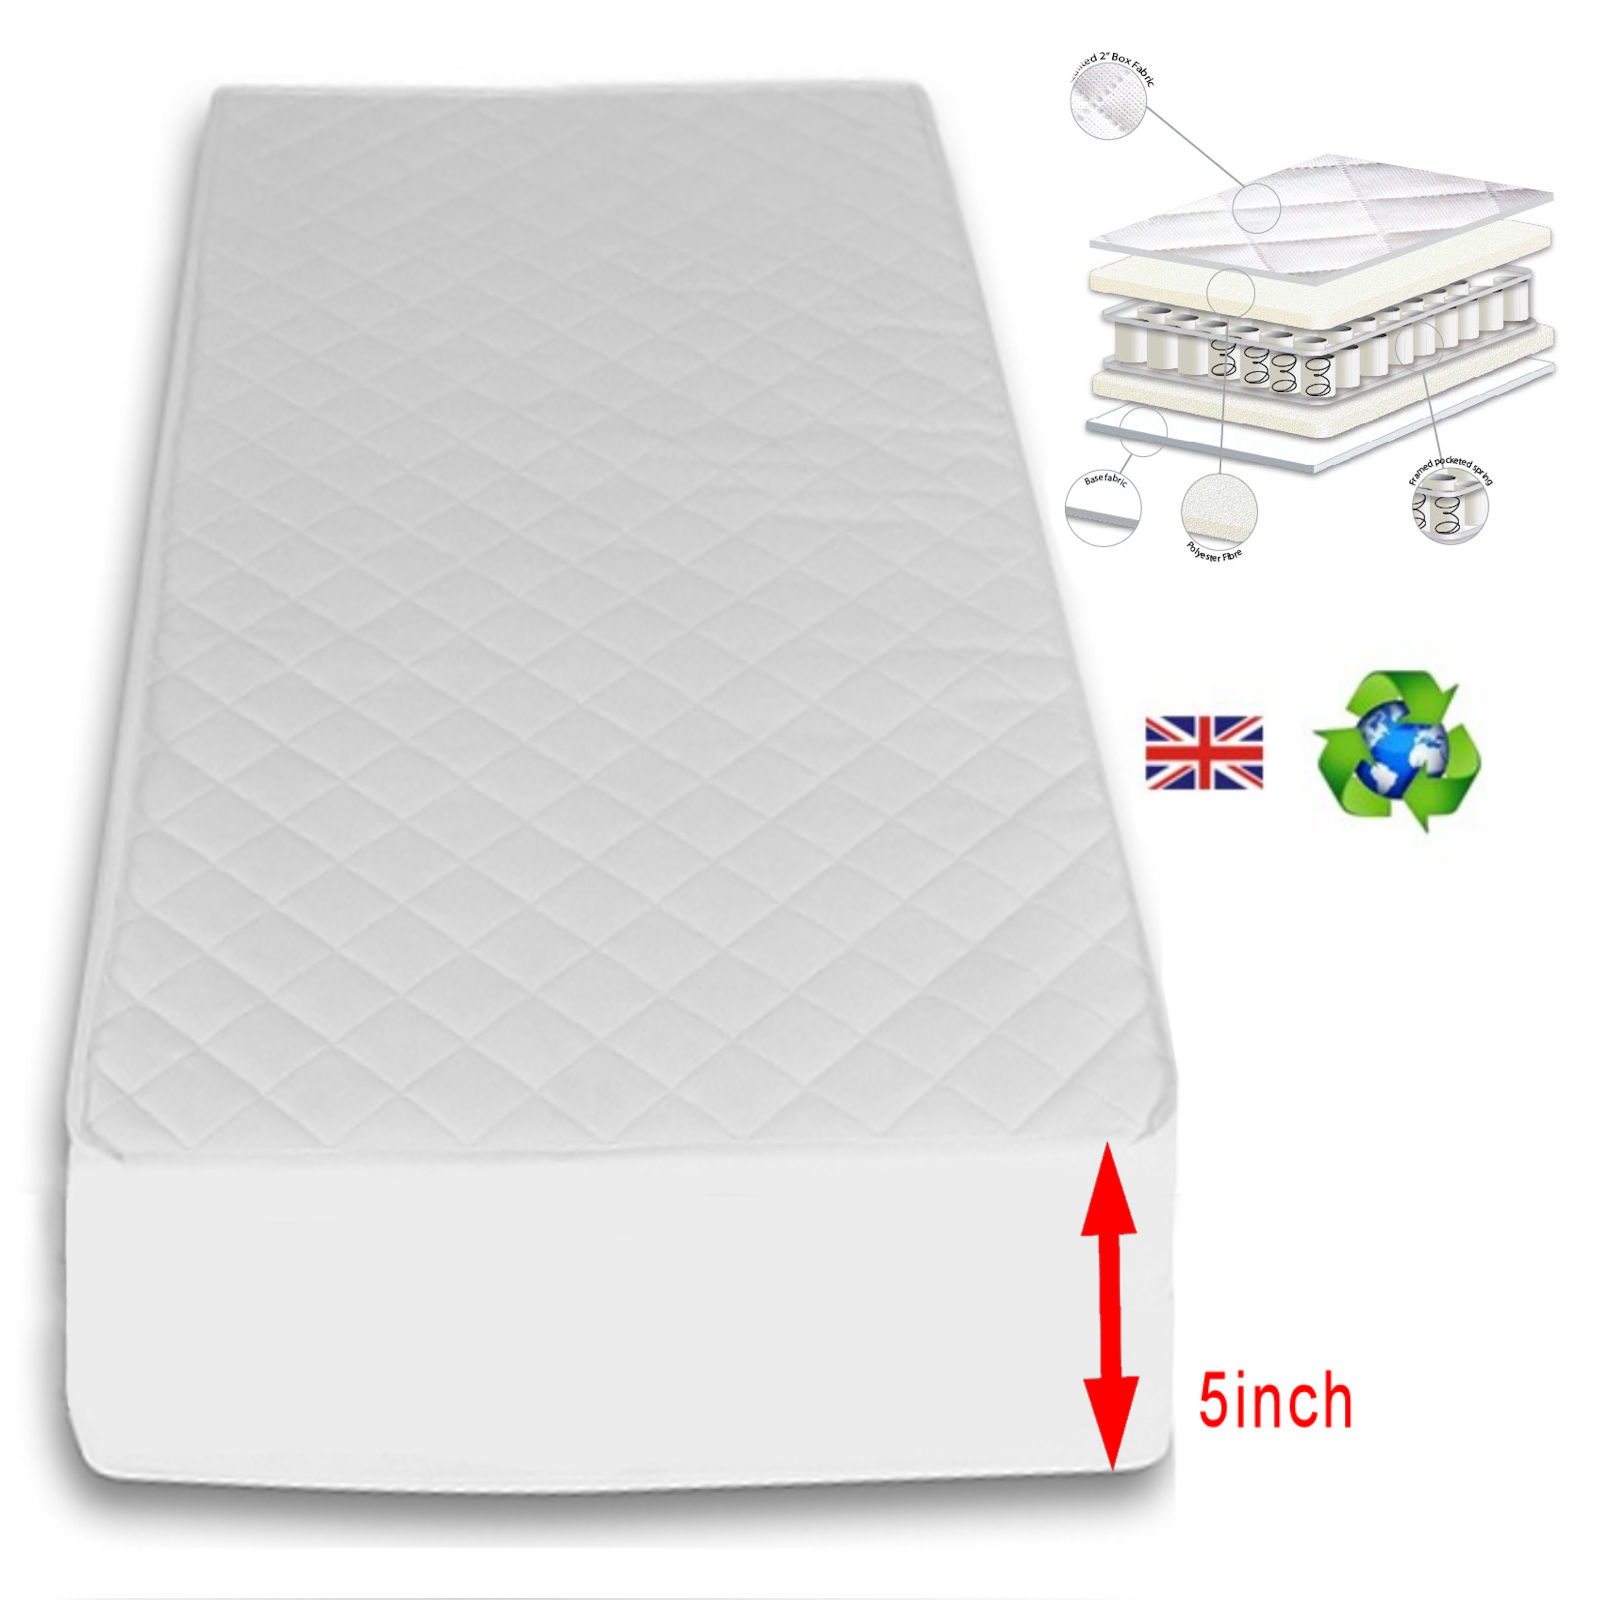 4baby 5 inch deluxe pocket sprung cot bed mattress 140 x 70 | buy at